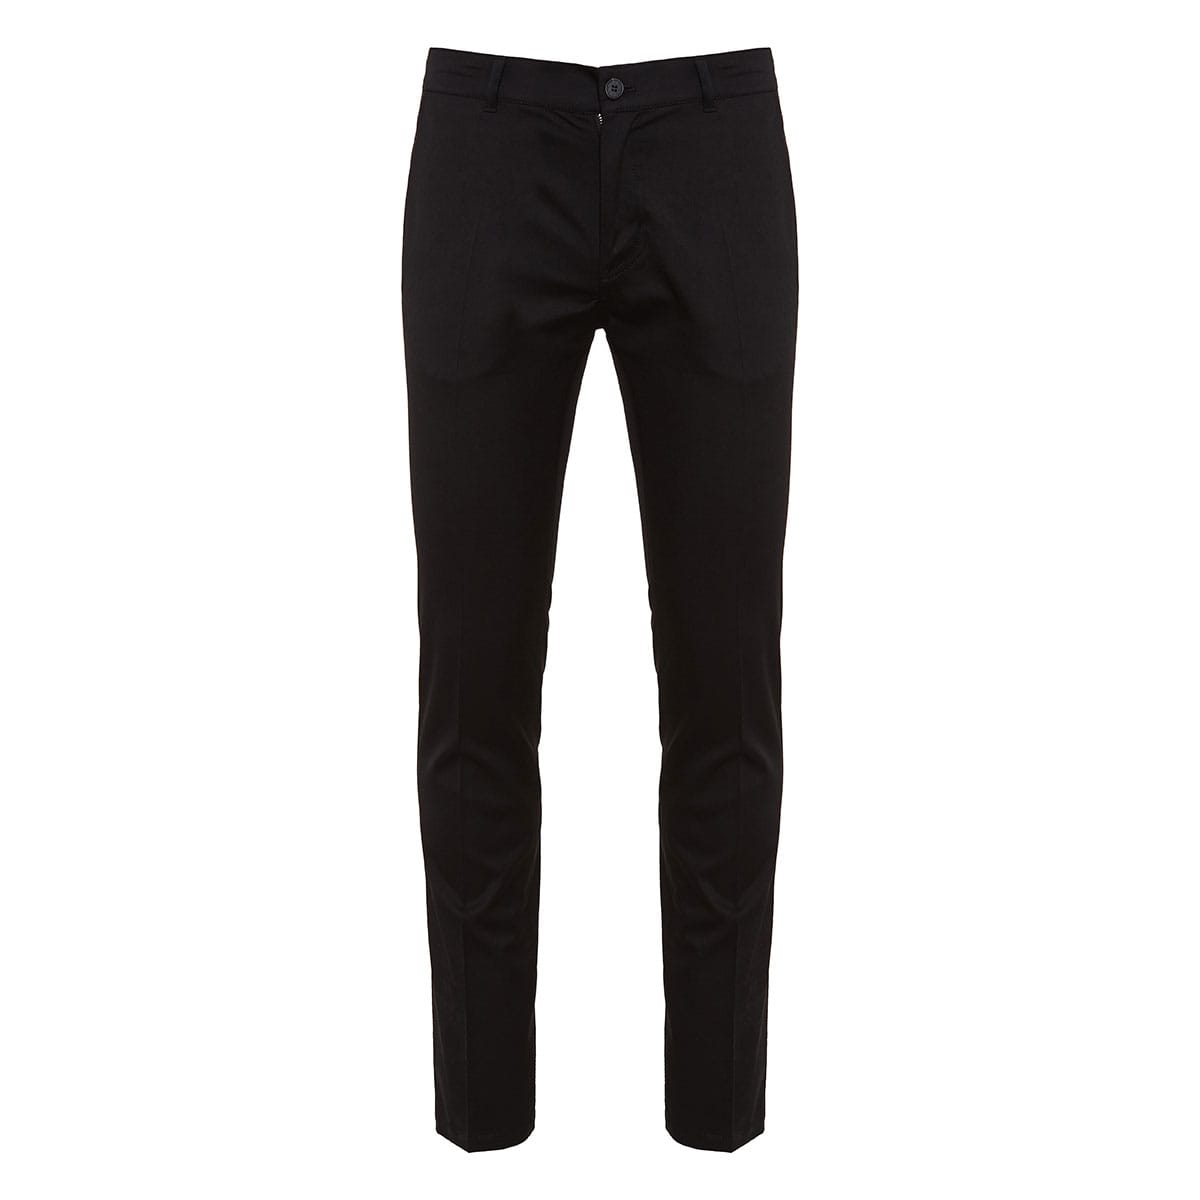 Cotton trousers with logo pockets